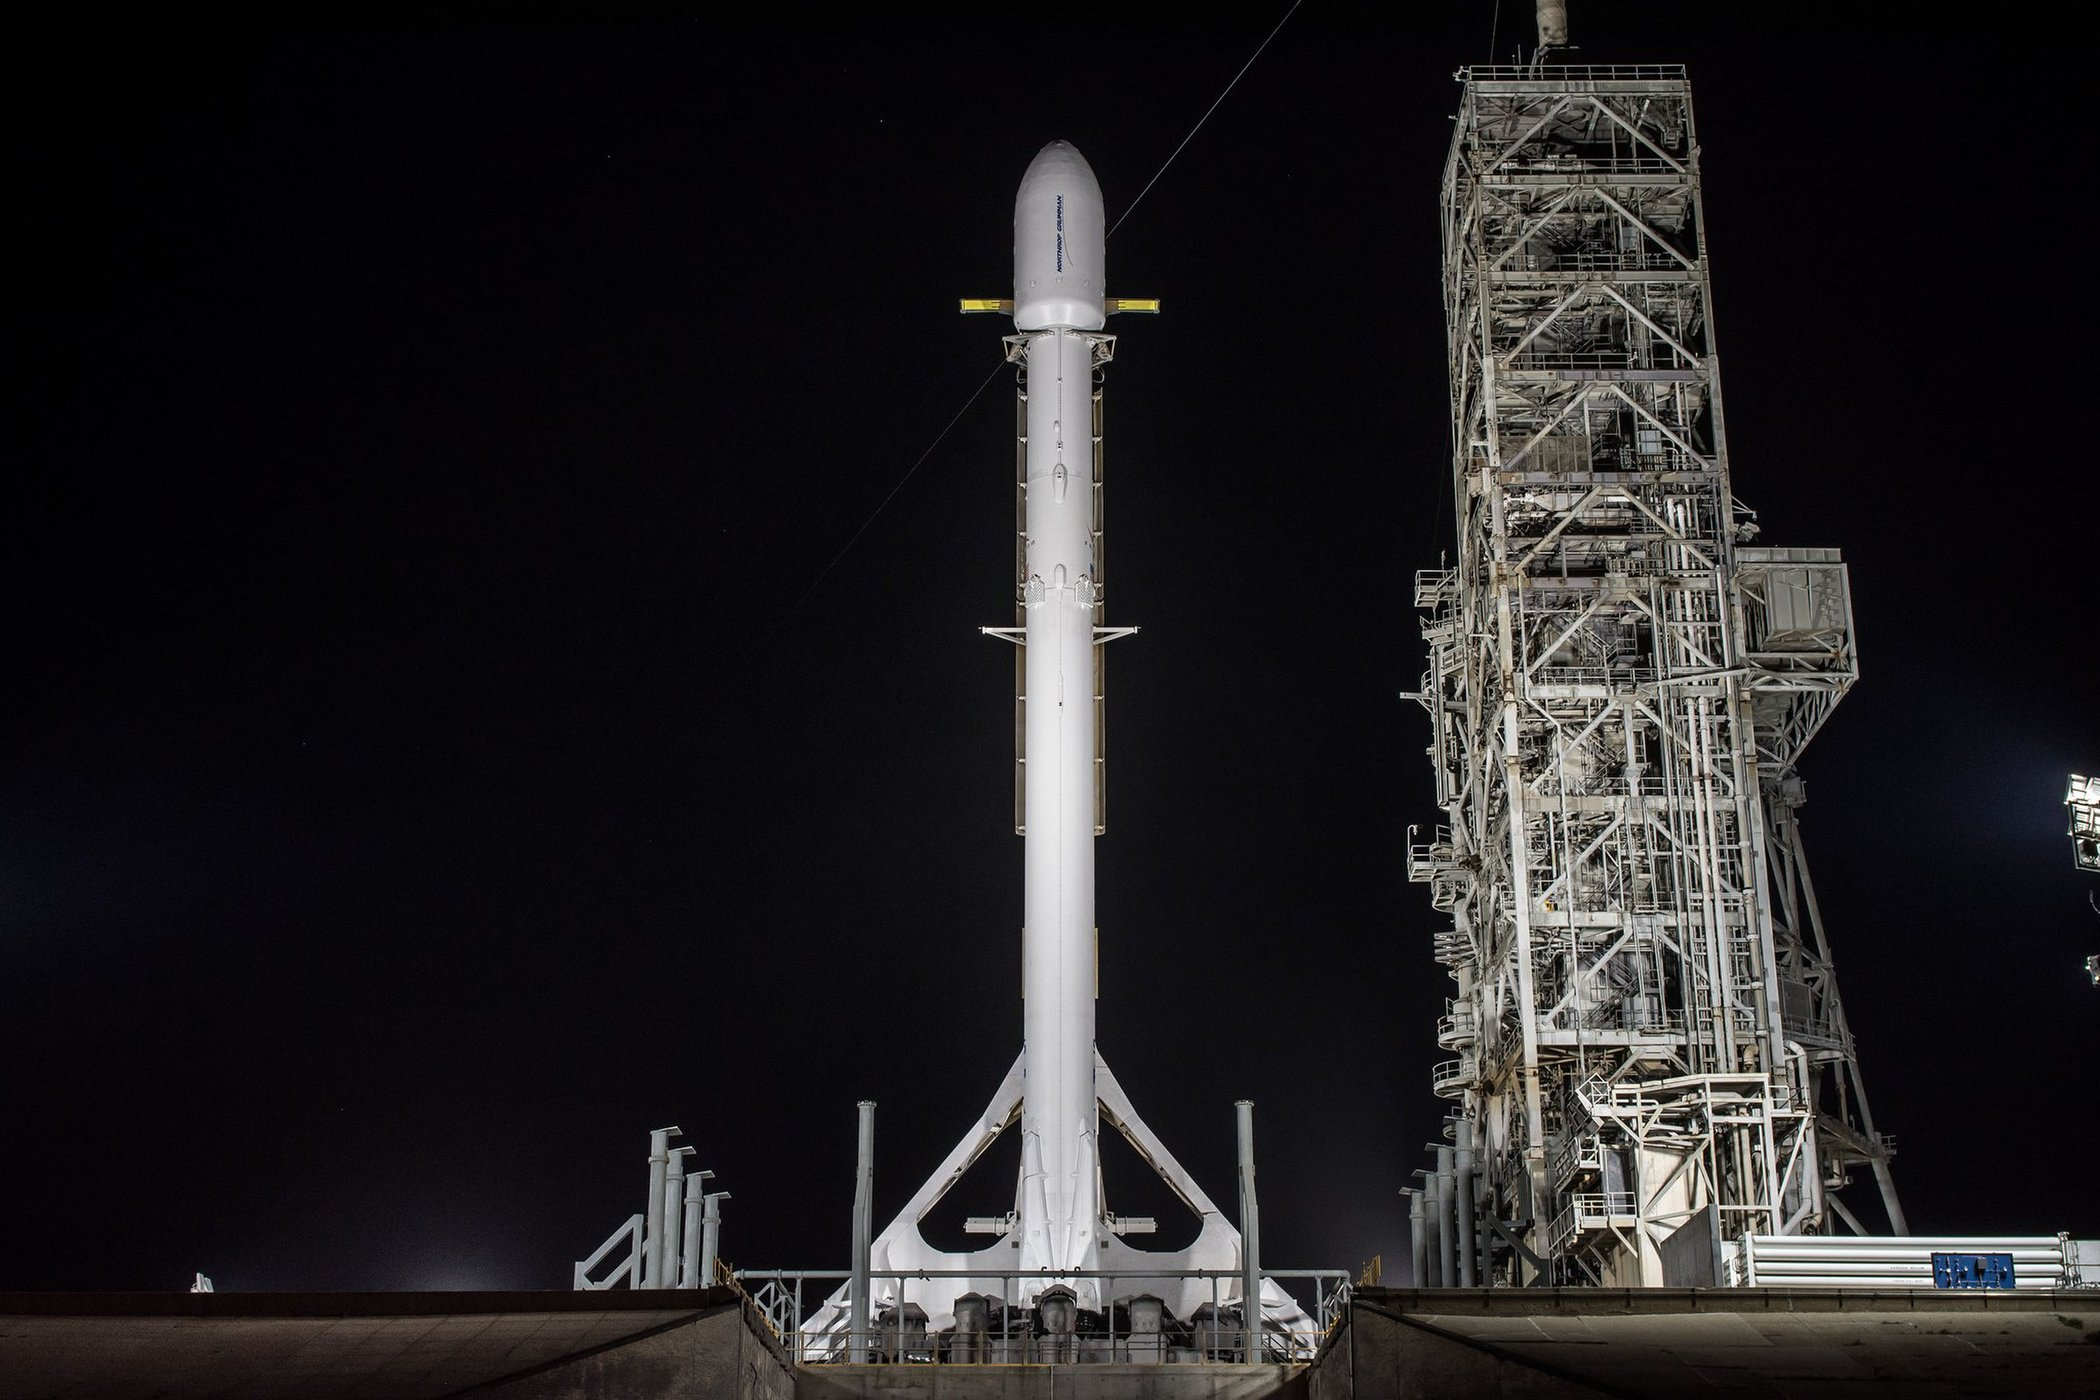 A SpaceX Falcon 9 rocket stands upright at NASA's Kennedy Space Center while carrying the top-secret Zuma payload.